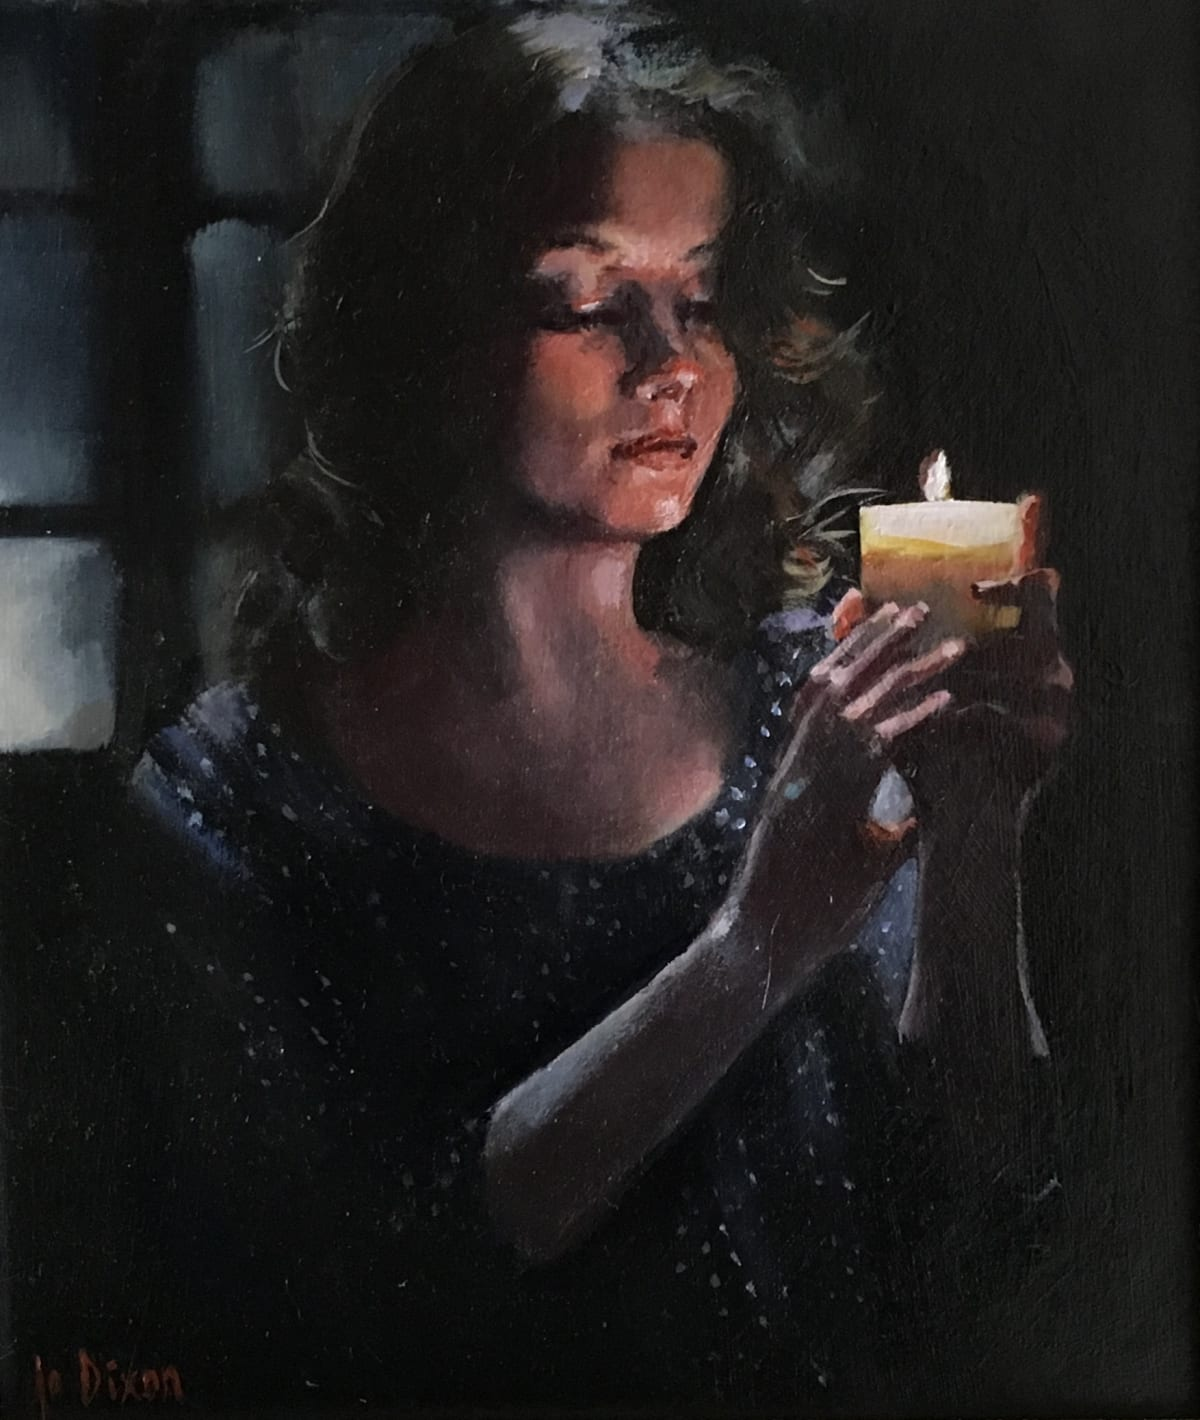 Jo Dixon, By Candlelight, 2019